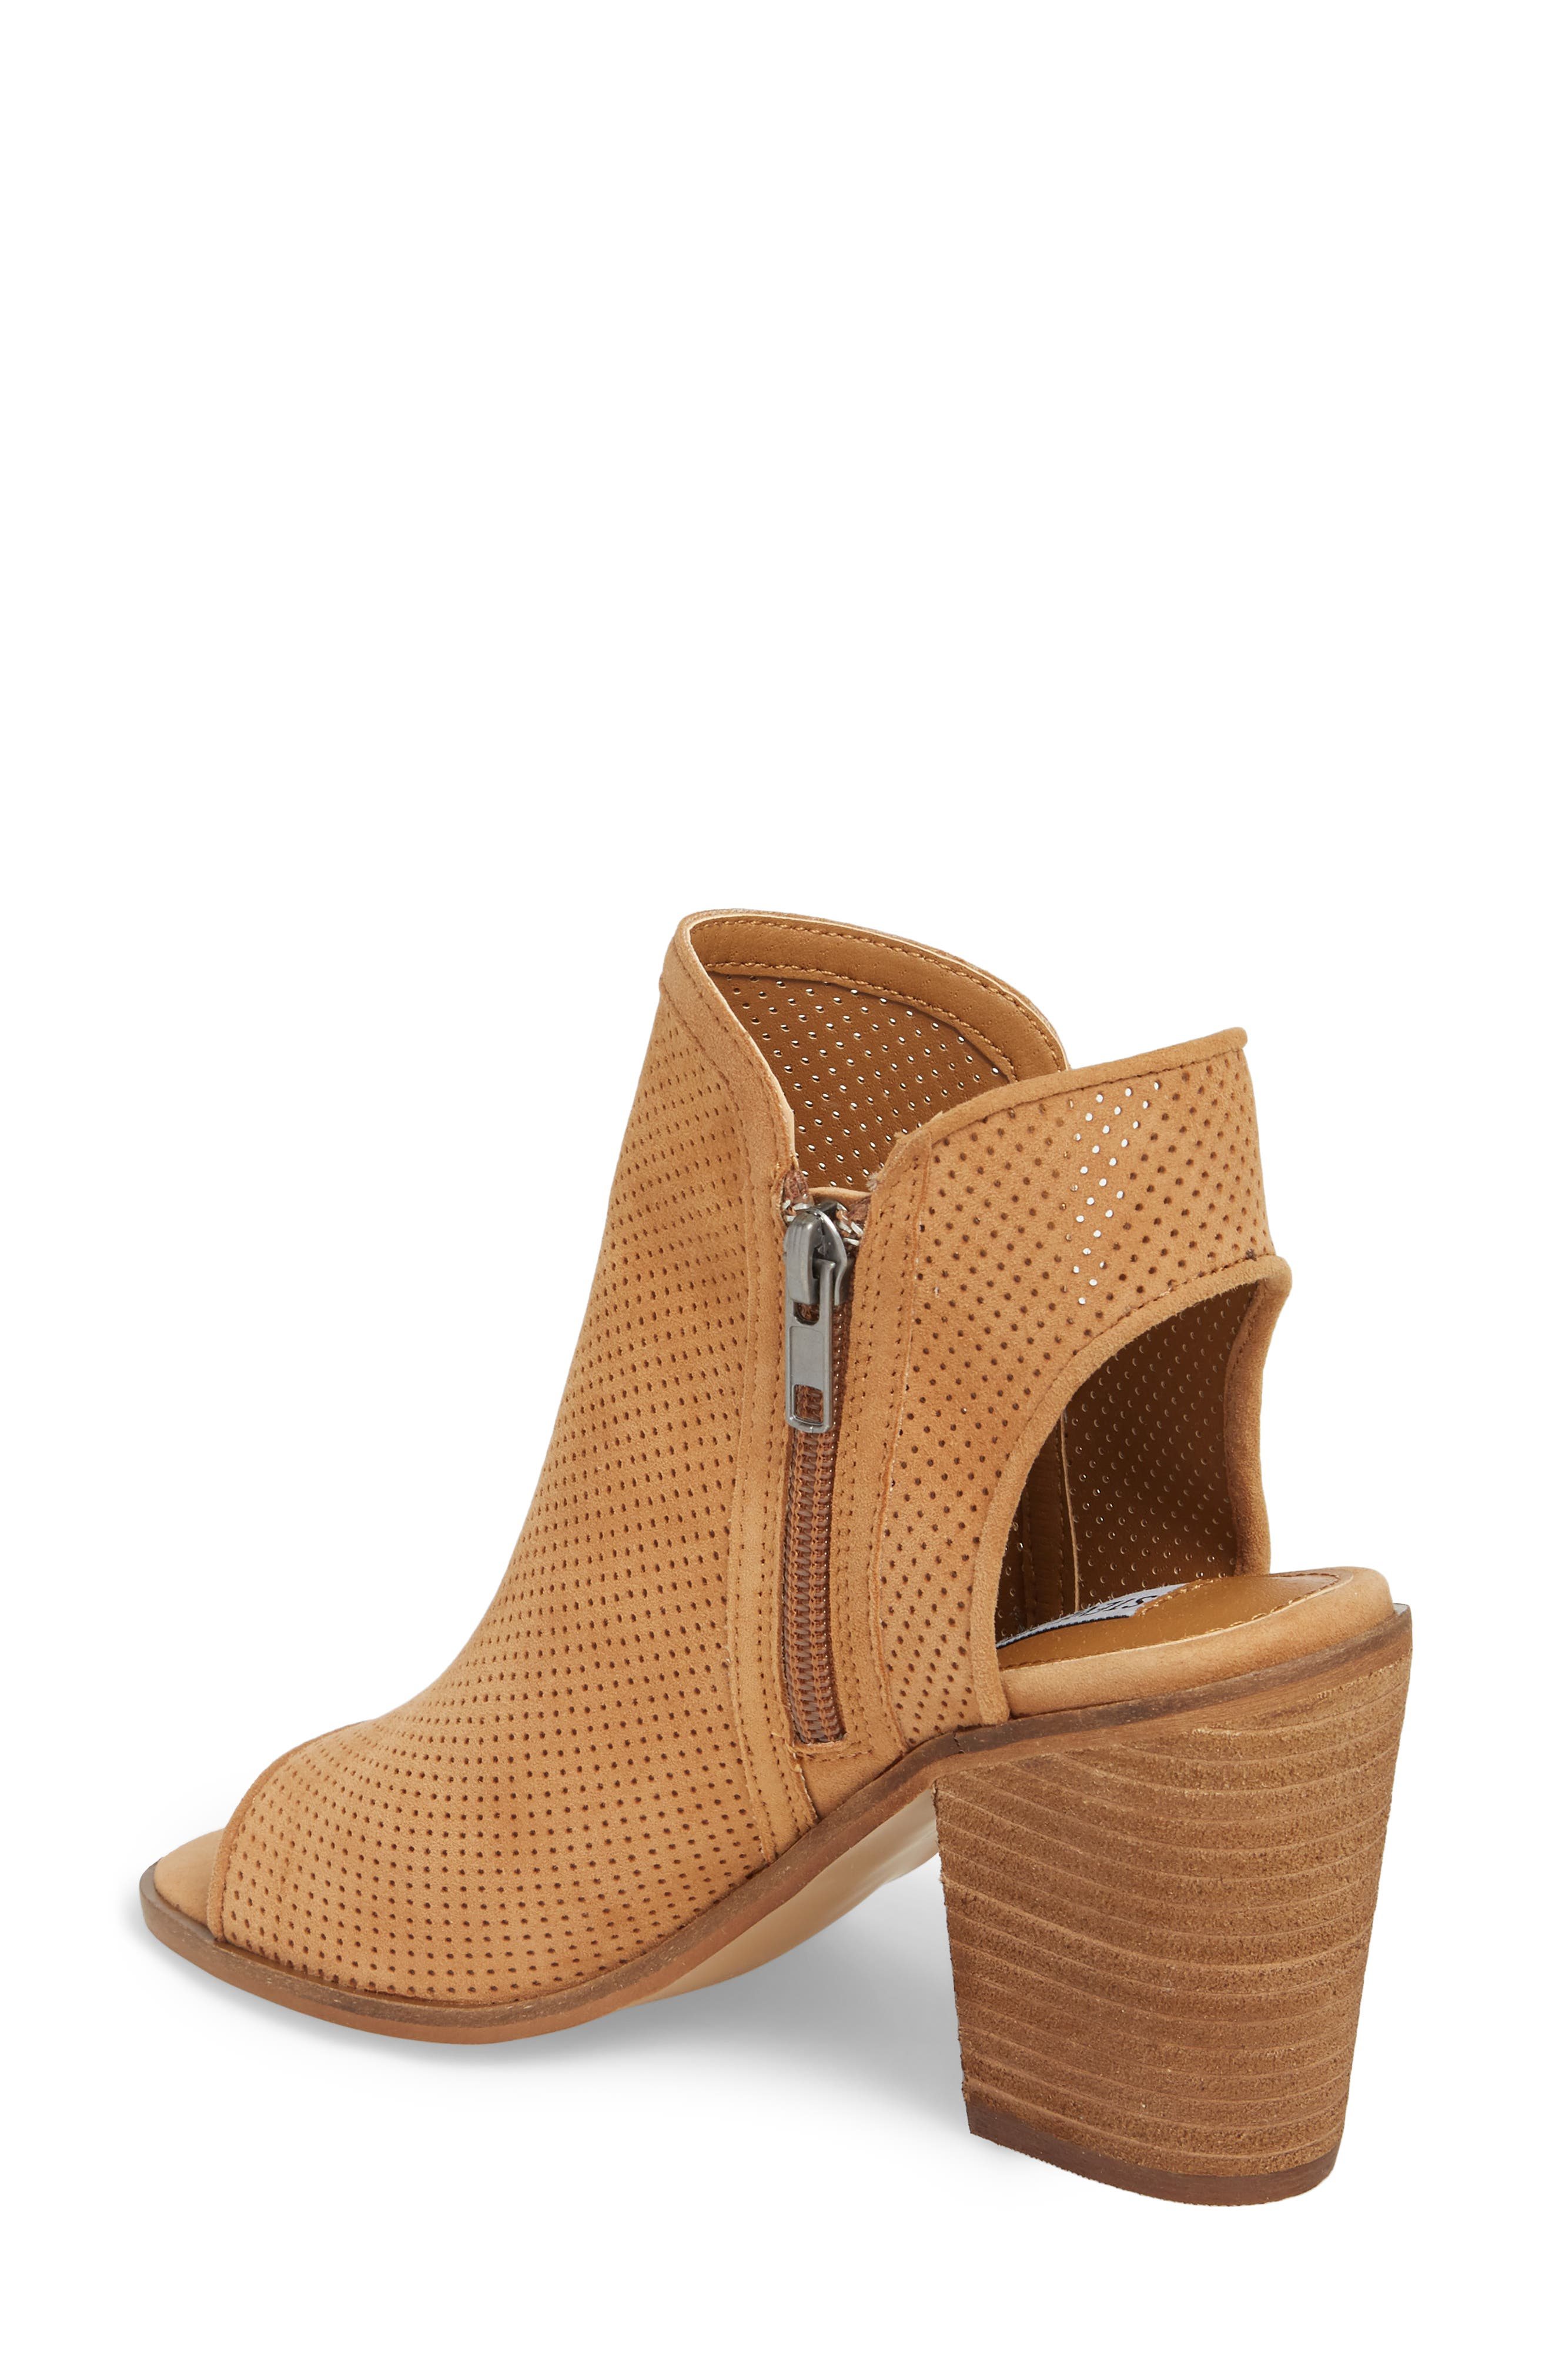 Maxine Perforated Bootie,                             Alternate thumbnail 2, color,                             Cognac Suede